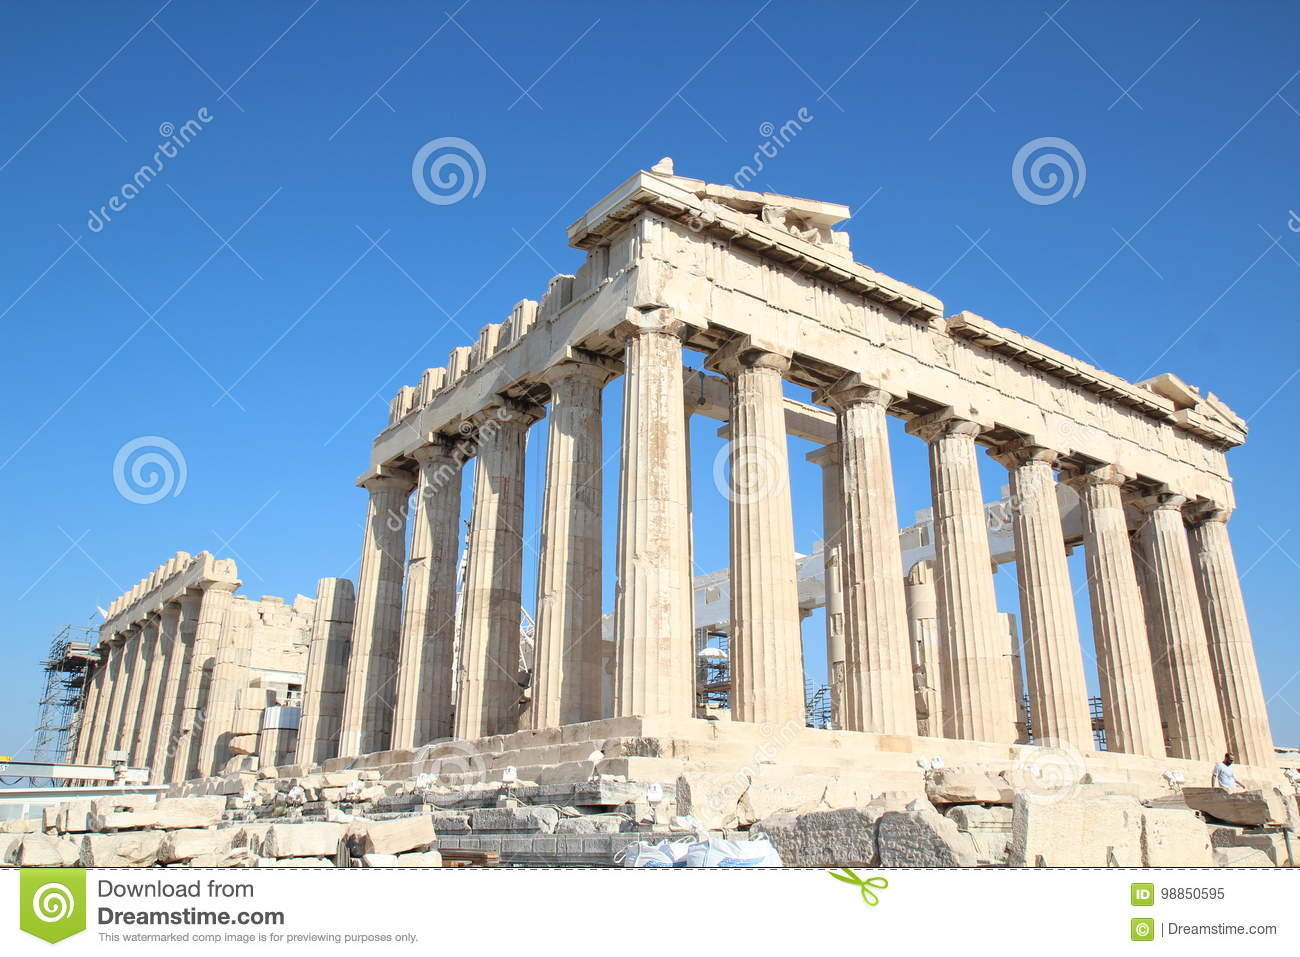 Parthenon, ναός Αθηνάς, Ελλάδα, Αθήνα